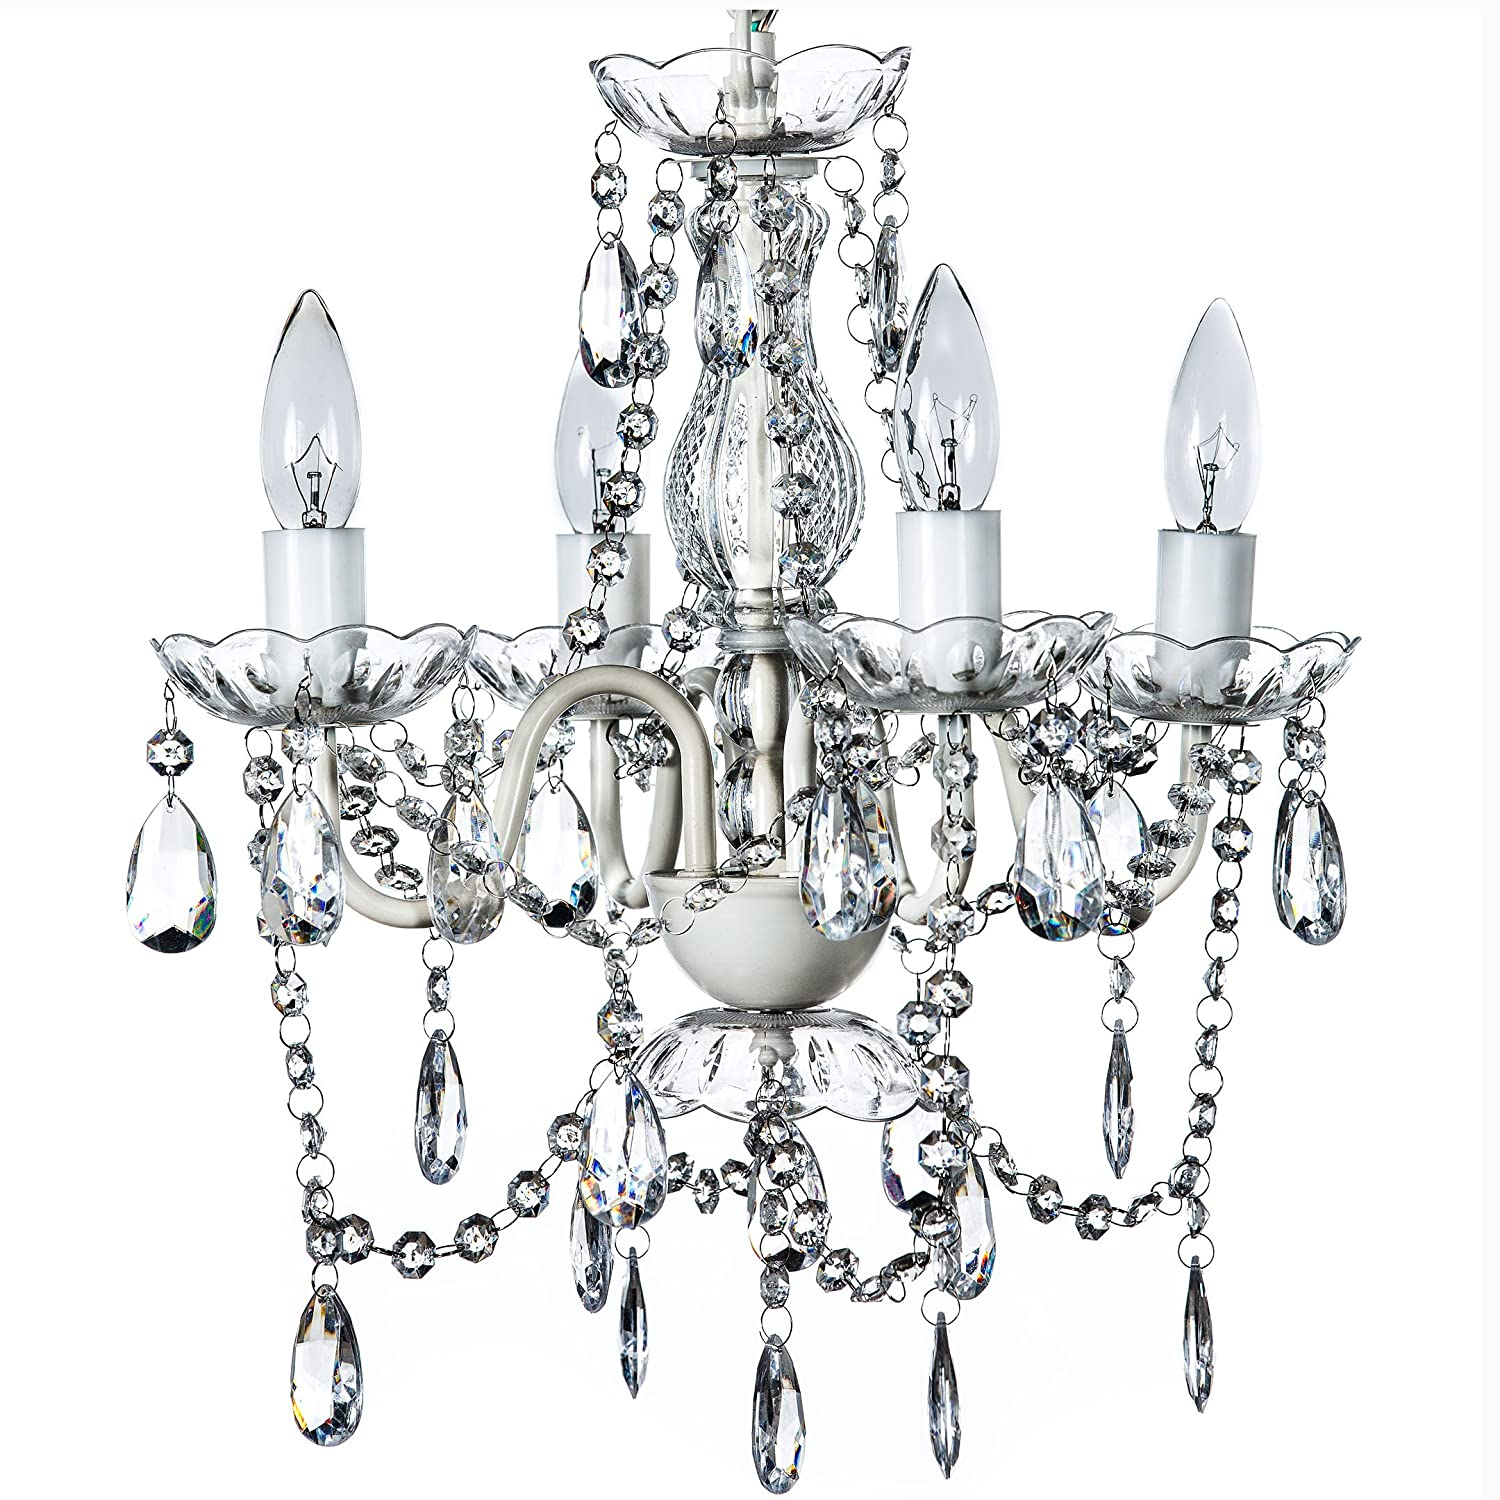 Gypsy Color 4 Arm CRYSTAL WHITE Small Acrylic CRYSTAL CHANDELIER New Chic Lighting Ceiling Fixture Entryway Bathroom Bedroom Closet Chandeliers, Crystal White